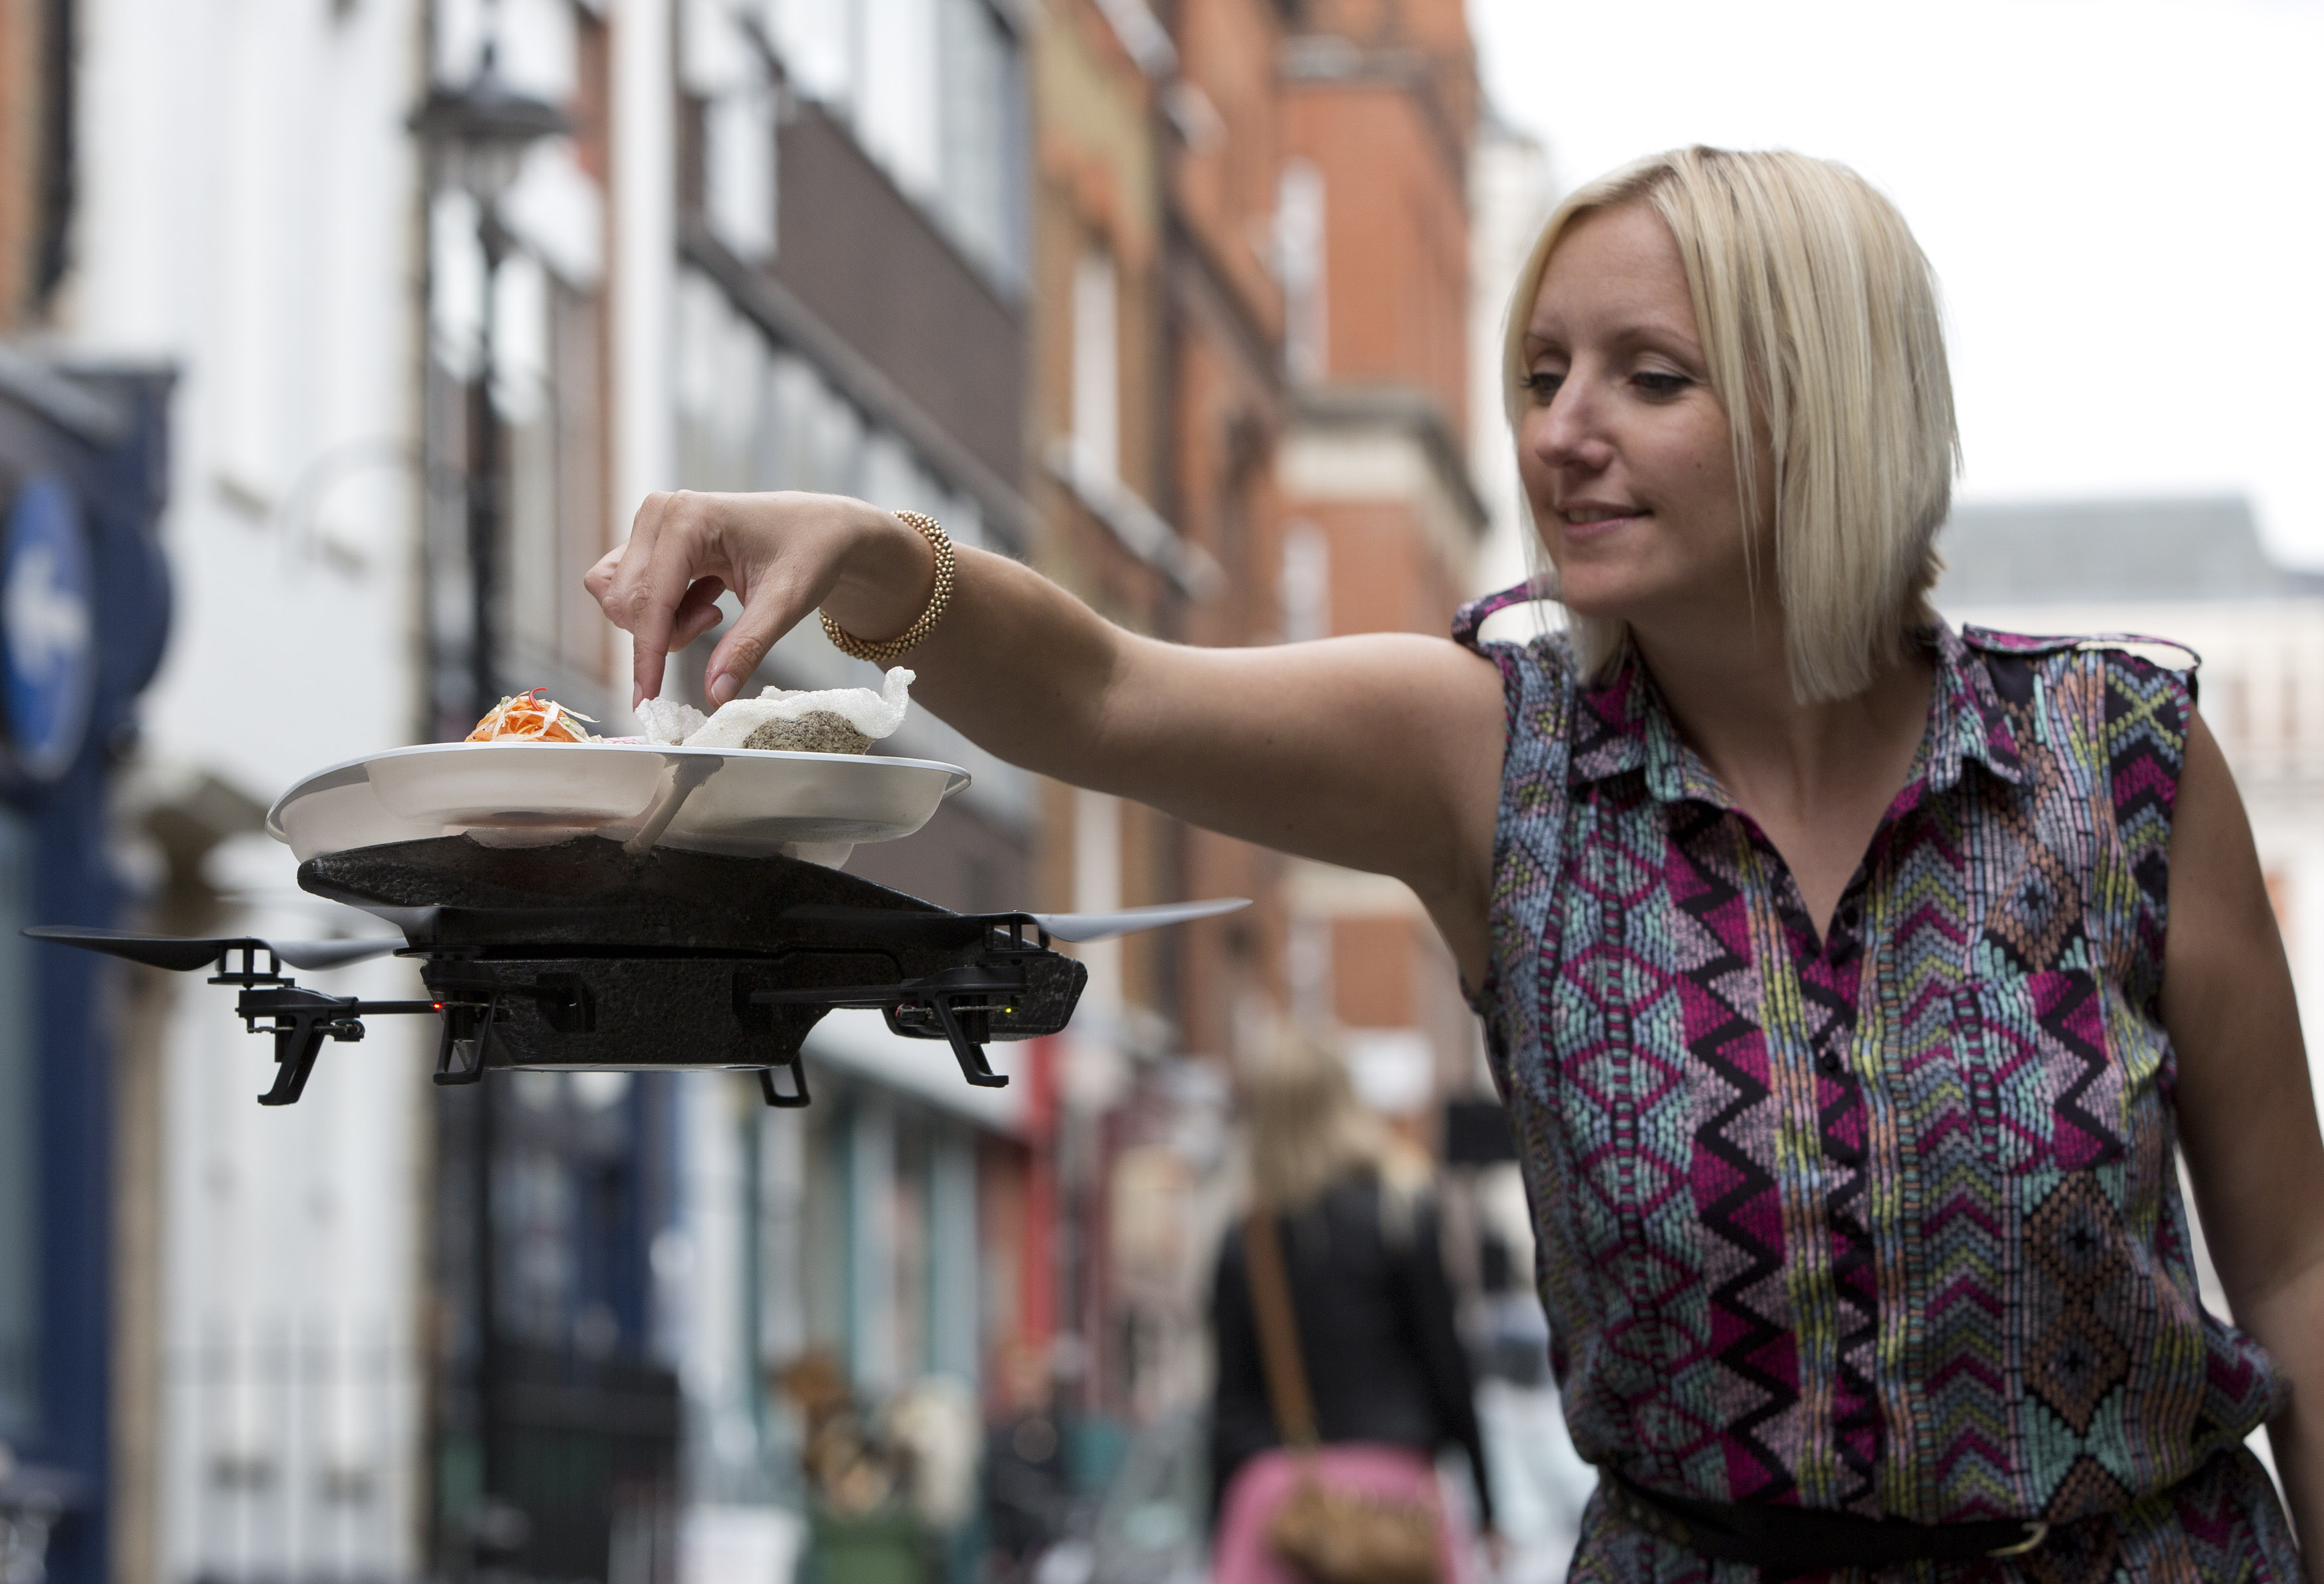 """A flying sushi service tray known as the """"itray"""" is demonstrated at a """"Yo! Sushi"""" restaurant in London"""